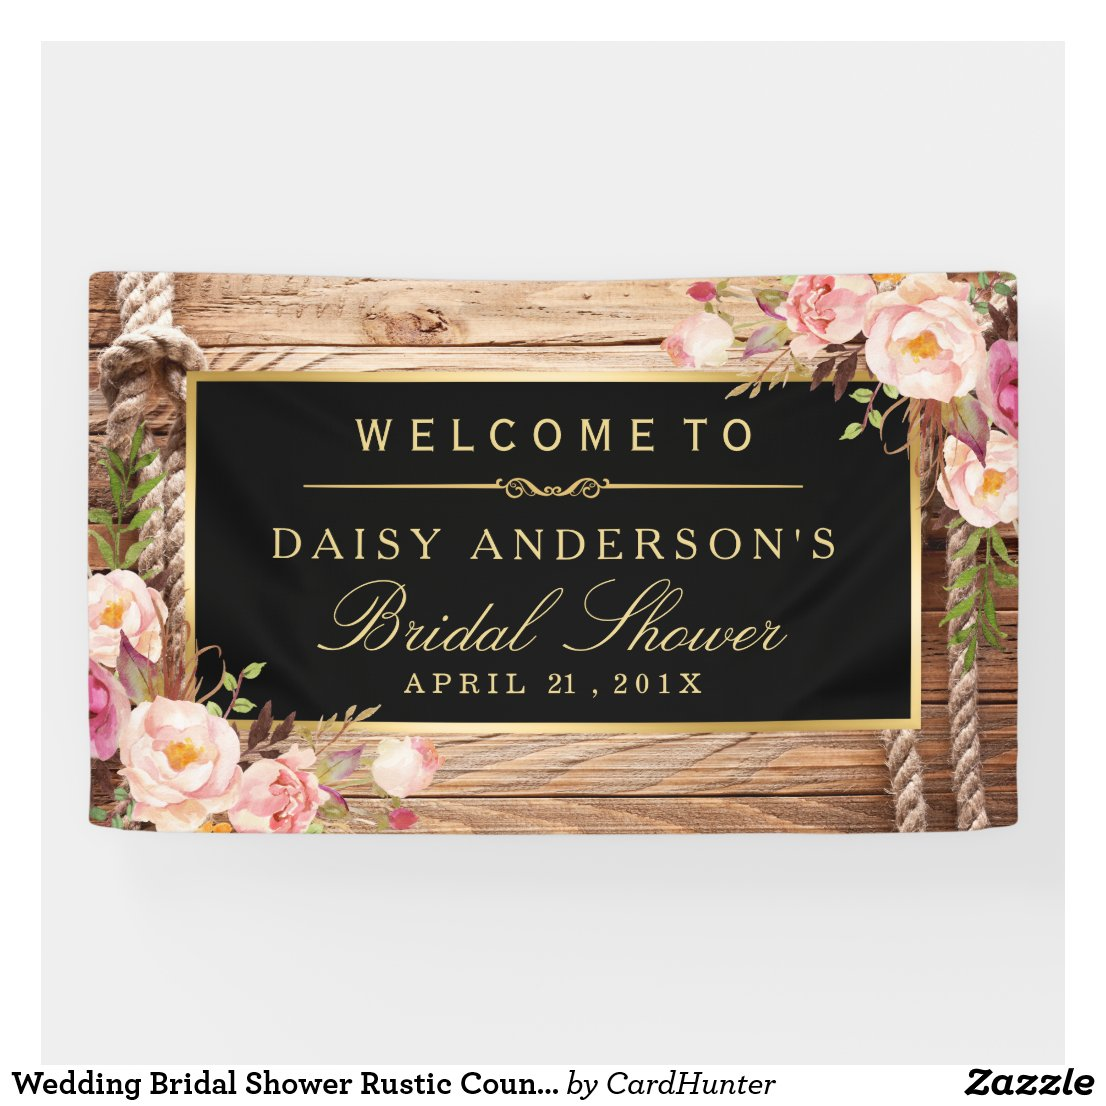 Wedding Bridal Shower Rustic Country Wood Floral